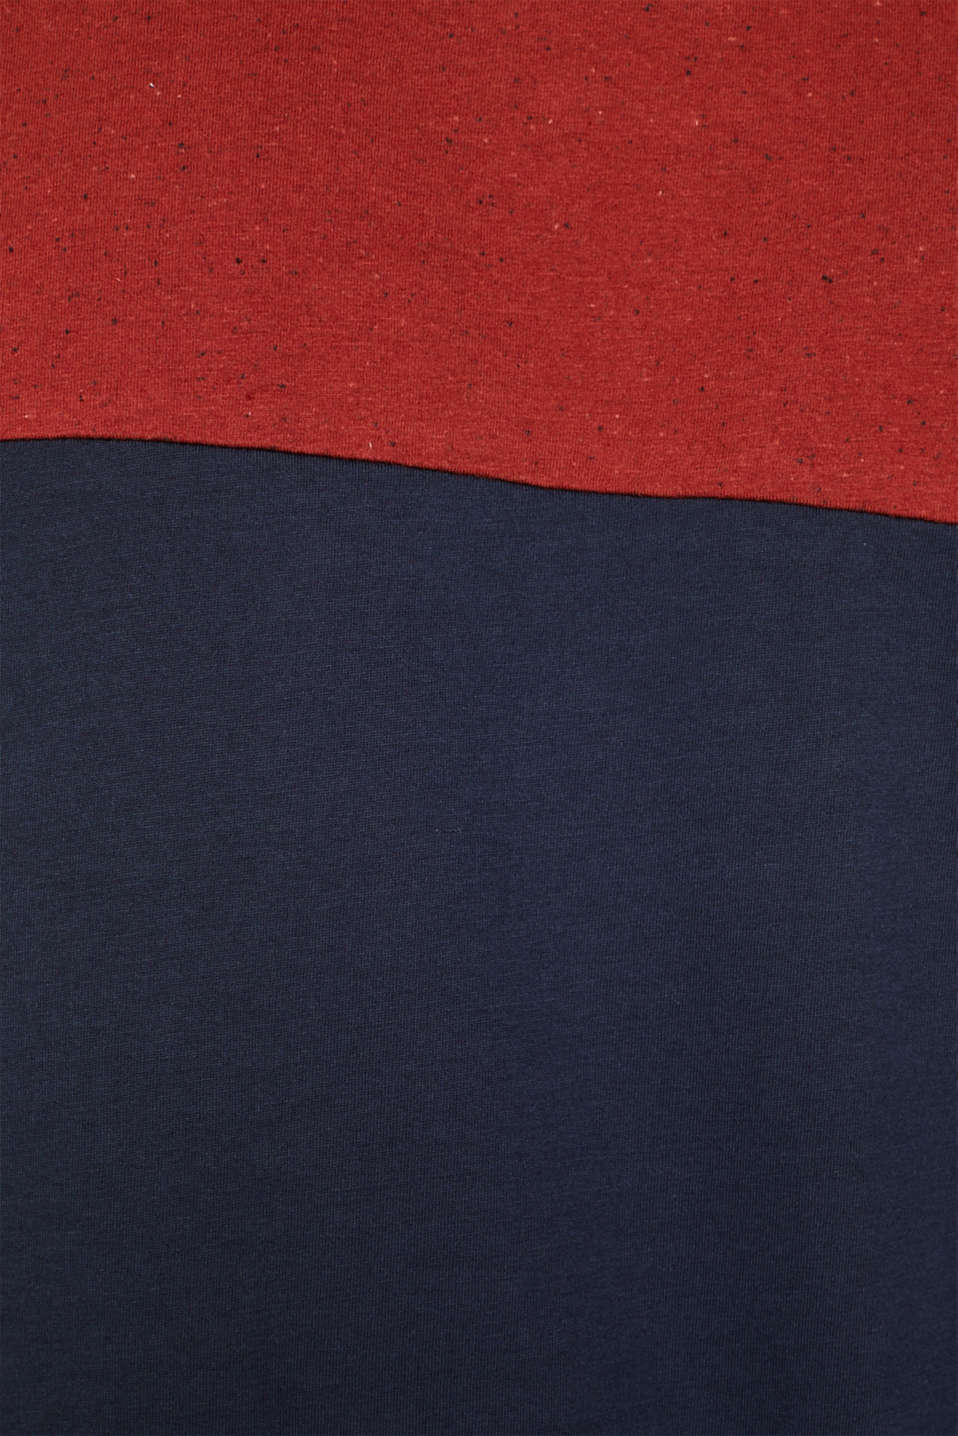 Jersey T-shirt in 100% cotton, NAVY 2, detail image number 4